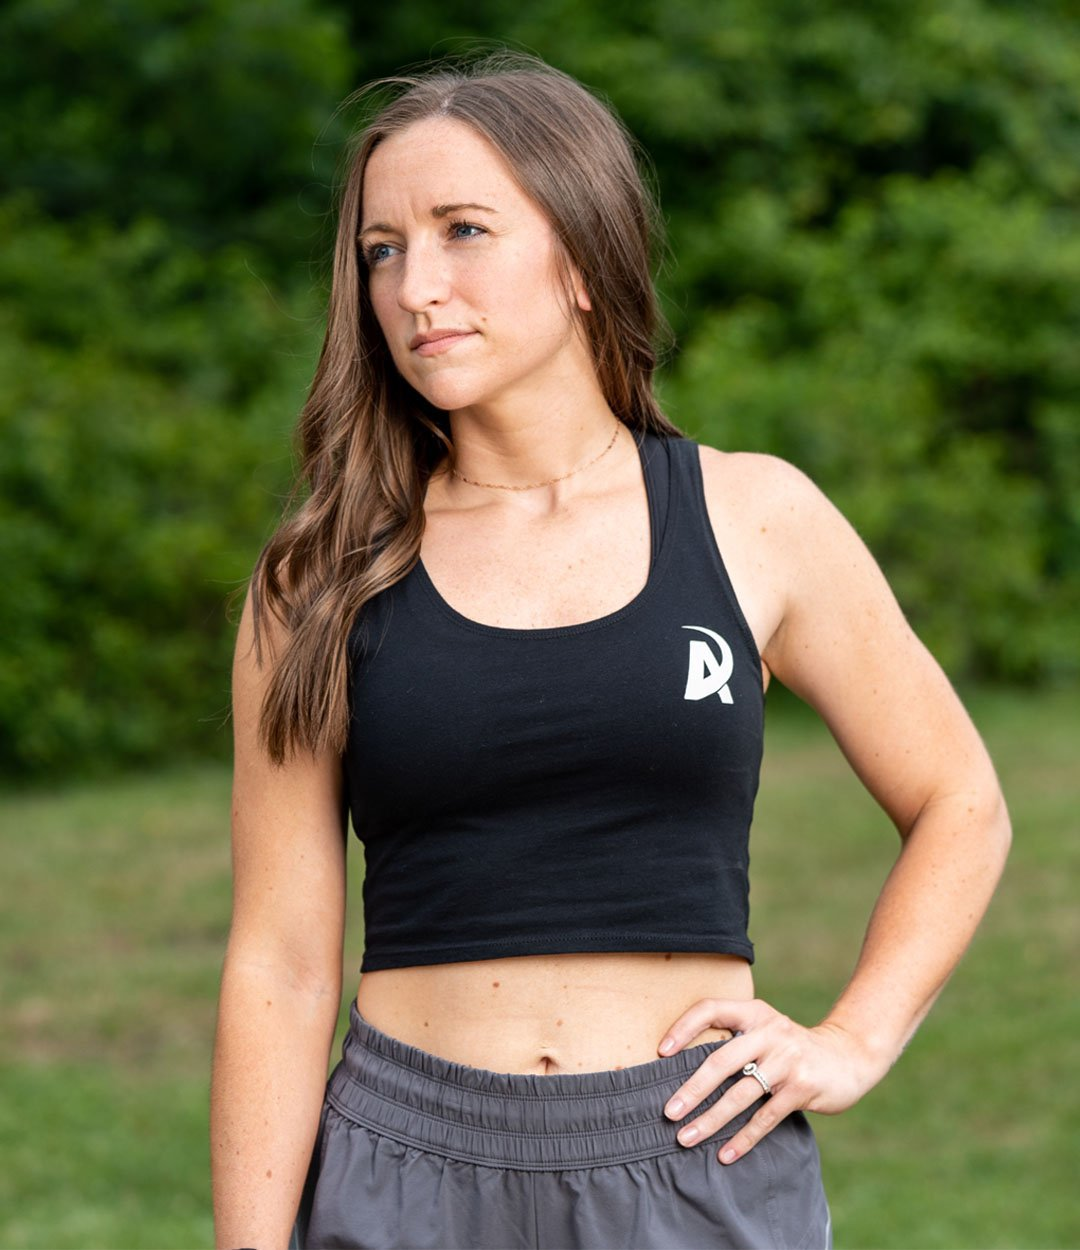 American Made Nutrition APPAREL XS/S Crop Top Tank // Black